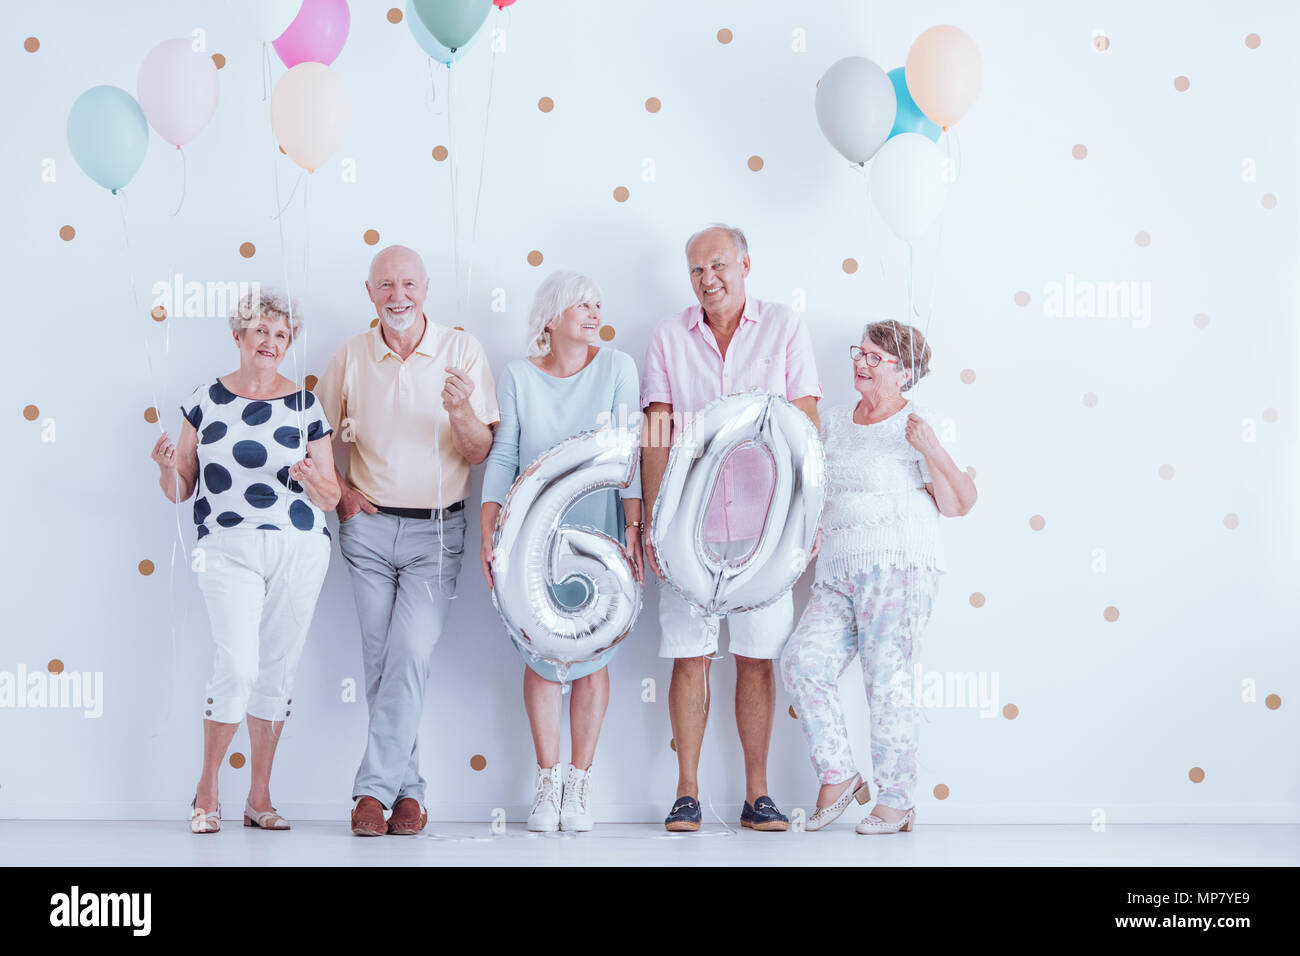 Happy elderly people holding balloons during a birthday party - Stock Image